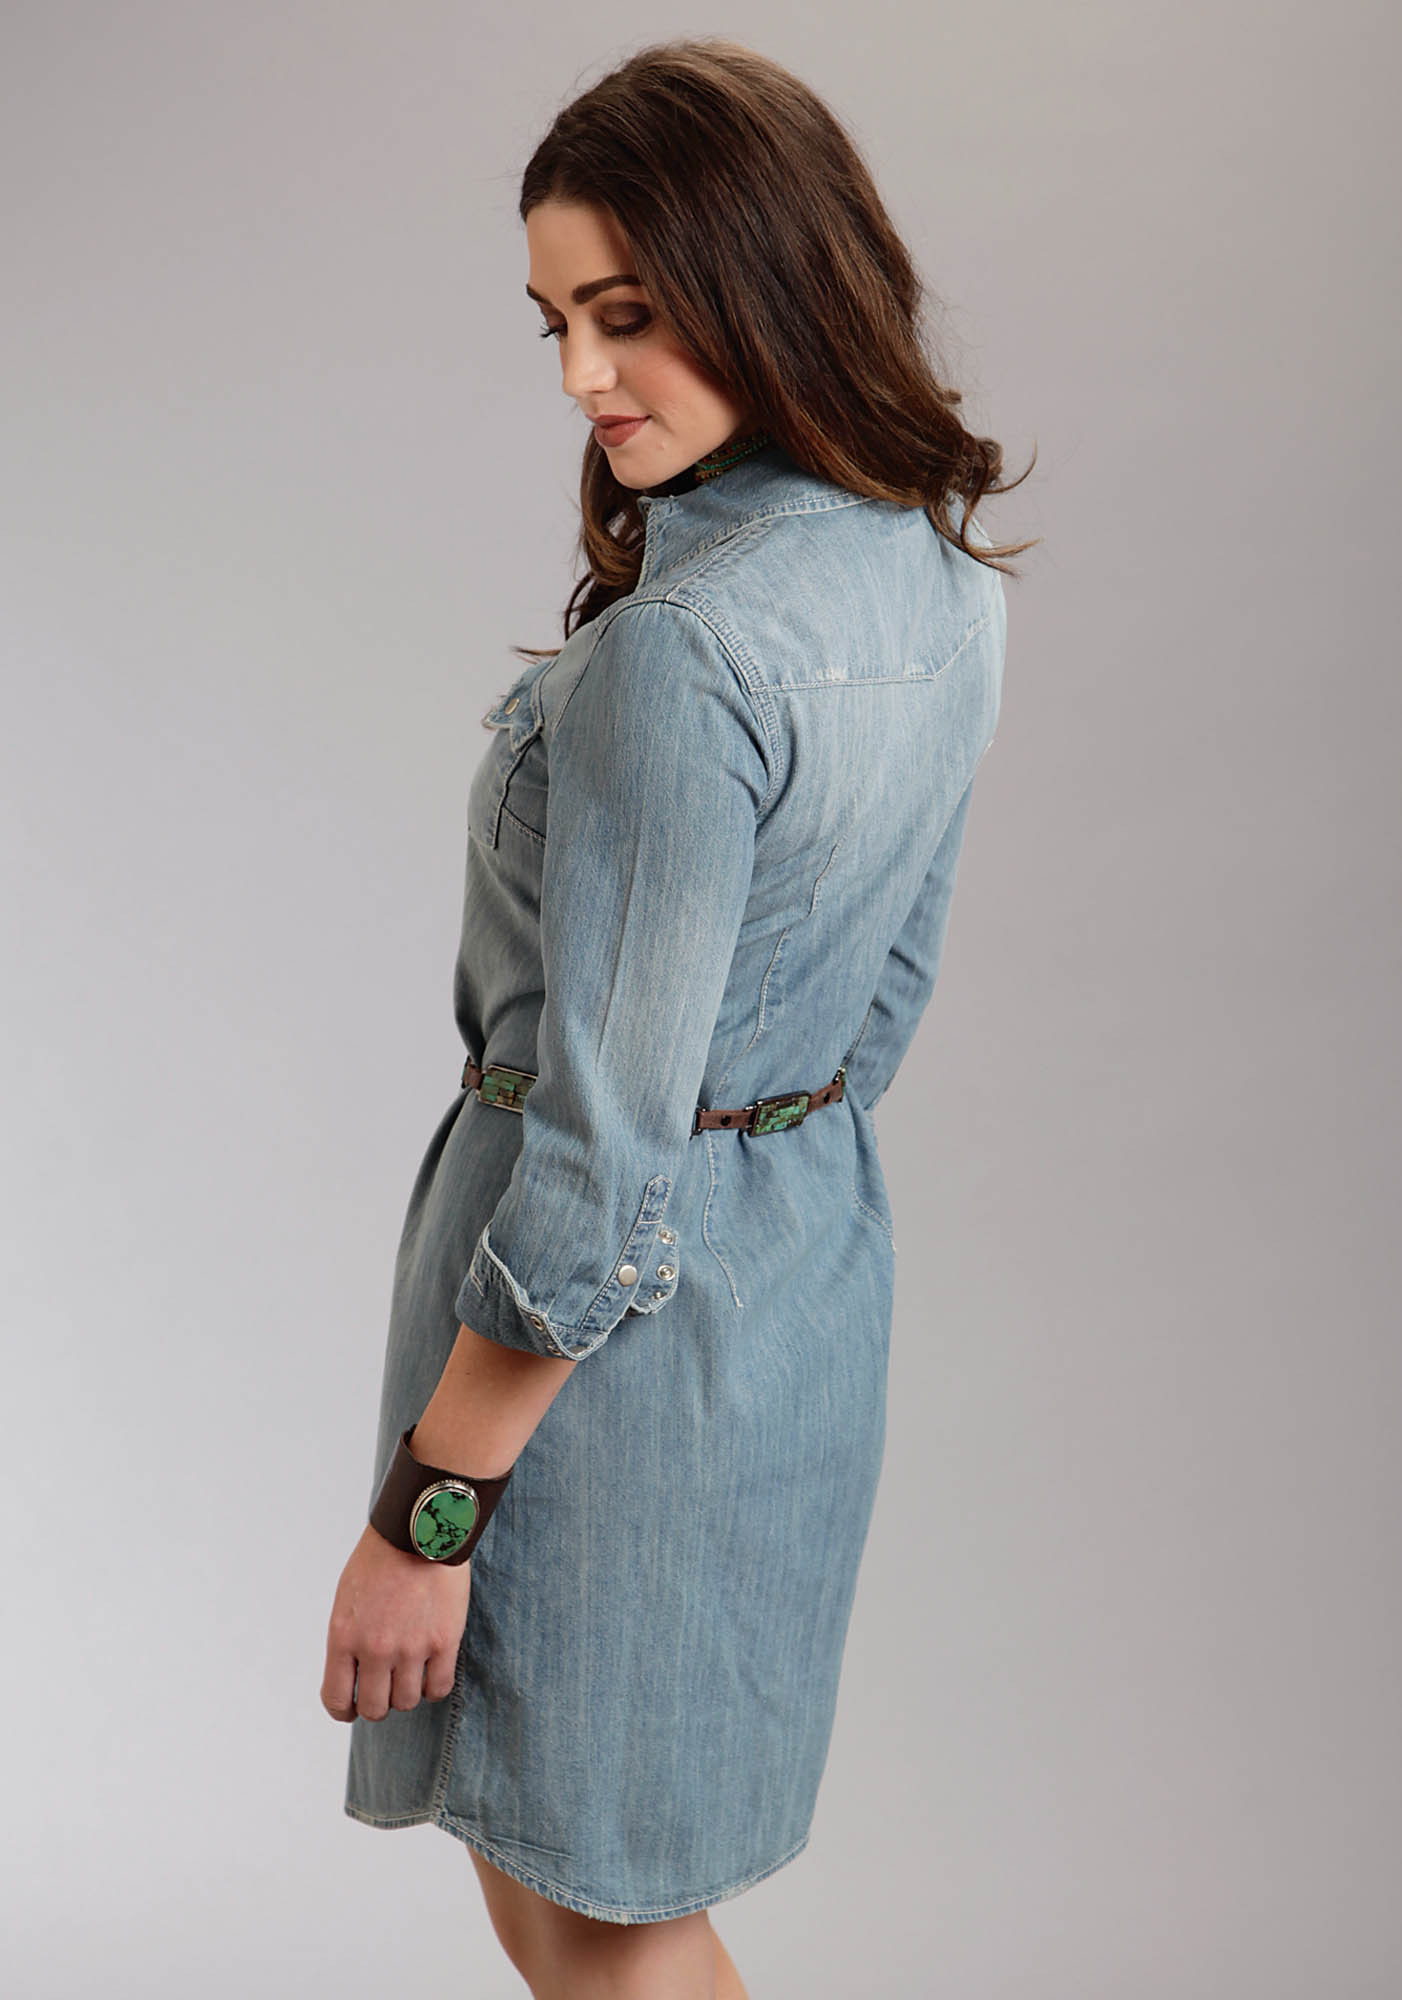 stetson girls Shop at starr western wear for the largest selection of western clothing for men, women & kids from cowboy boots to belts & hats, we got it buy now.